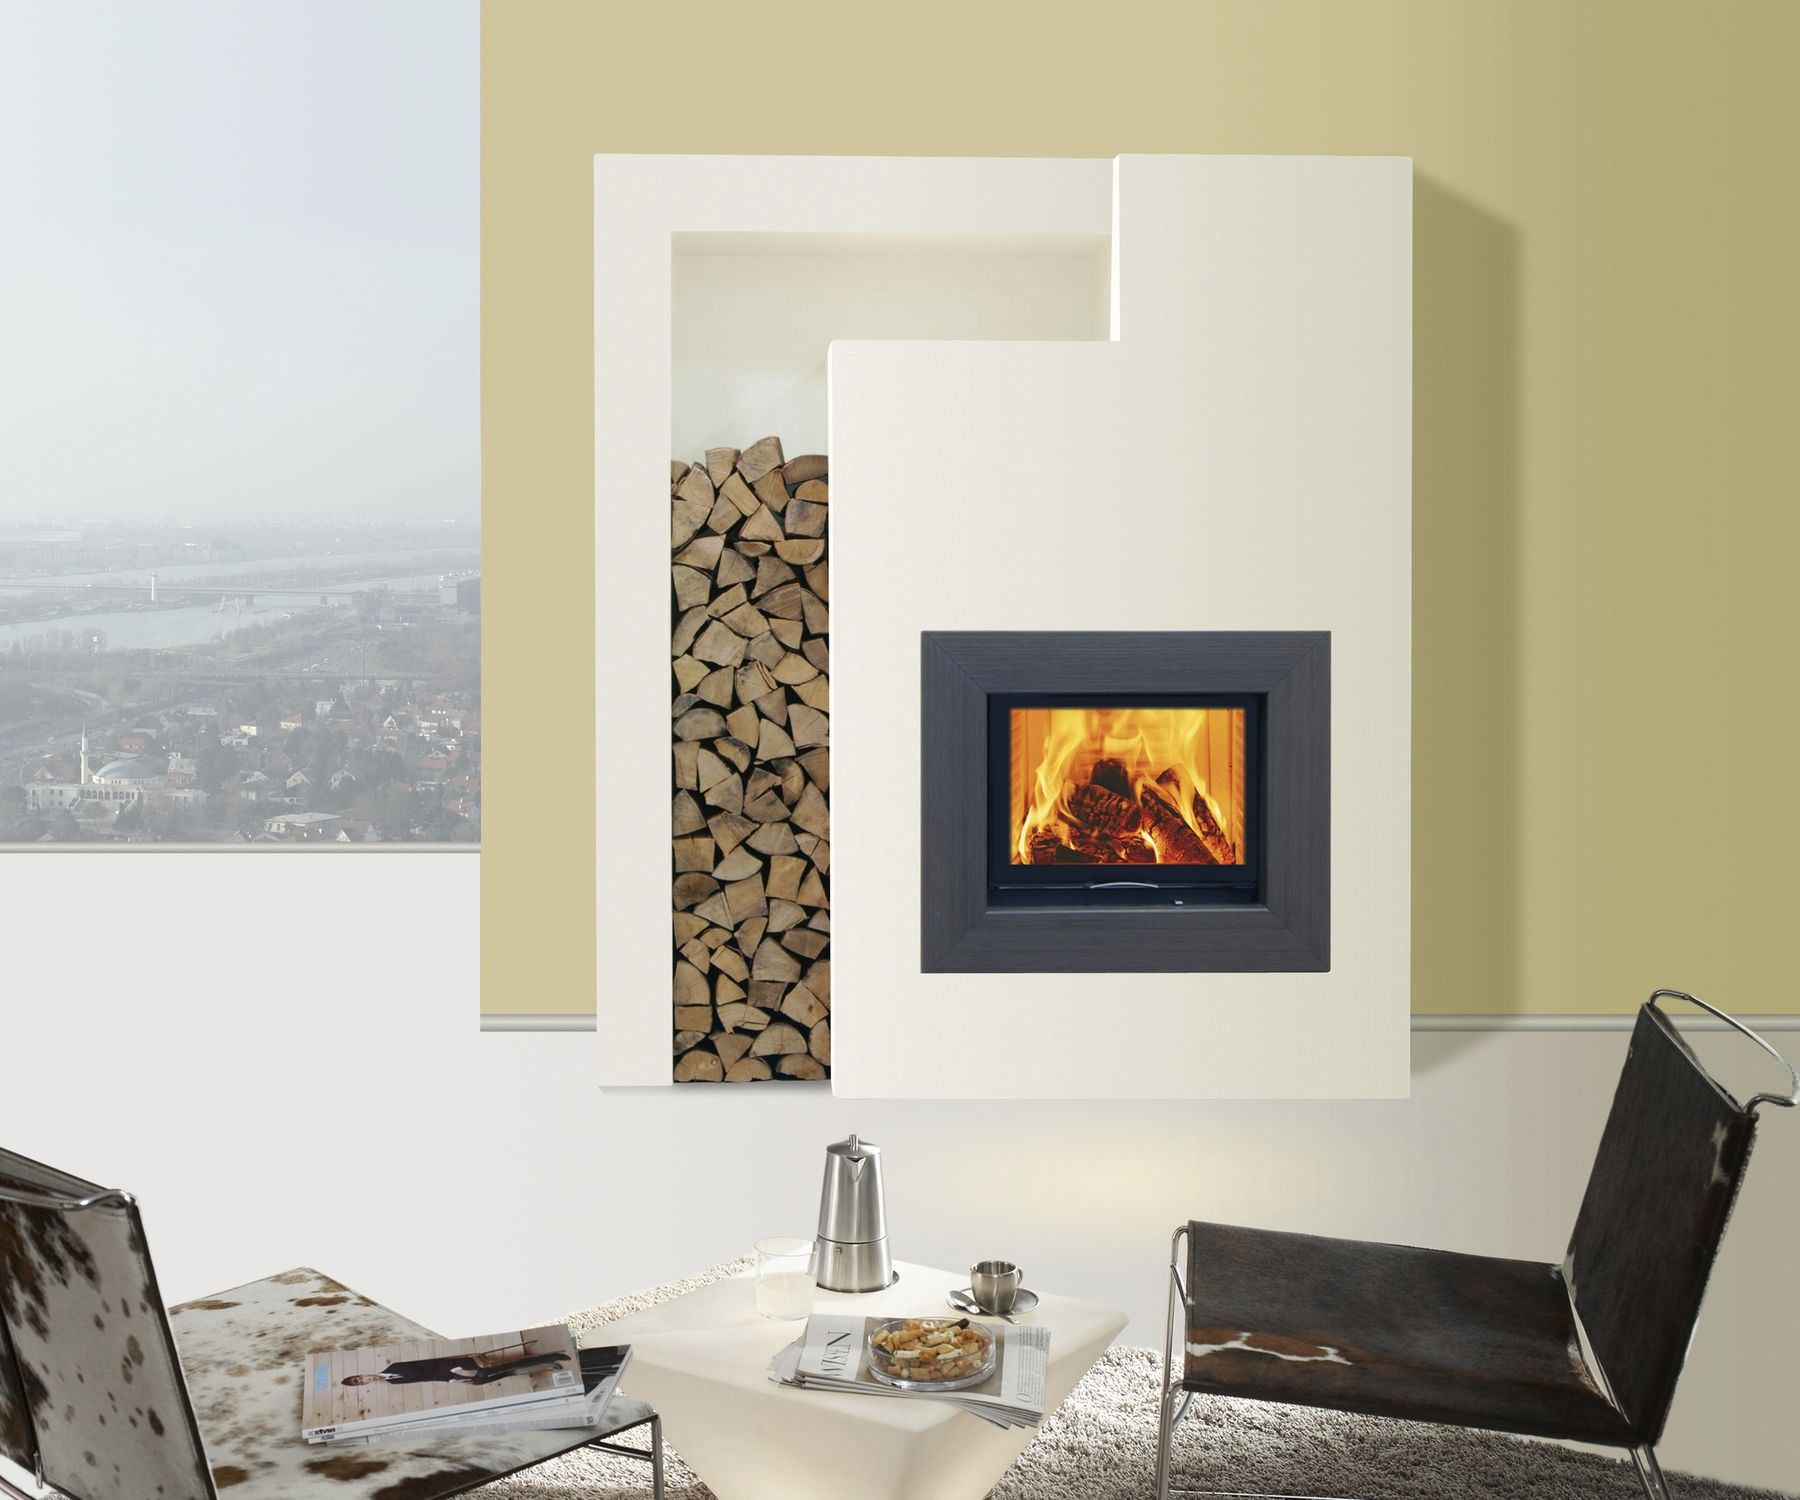 Small Room Gas Fireplace Image Result For Small Corner Gas Fireplace Ideas